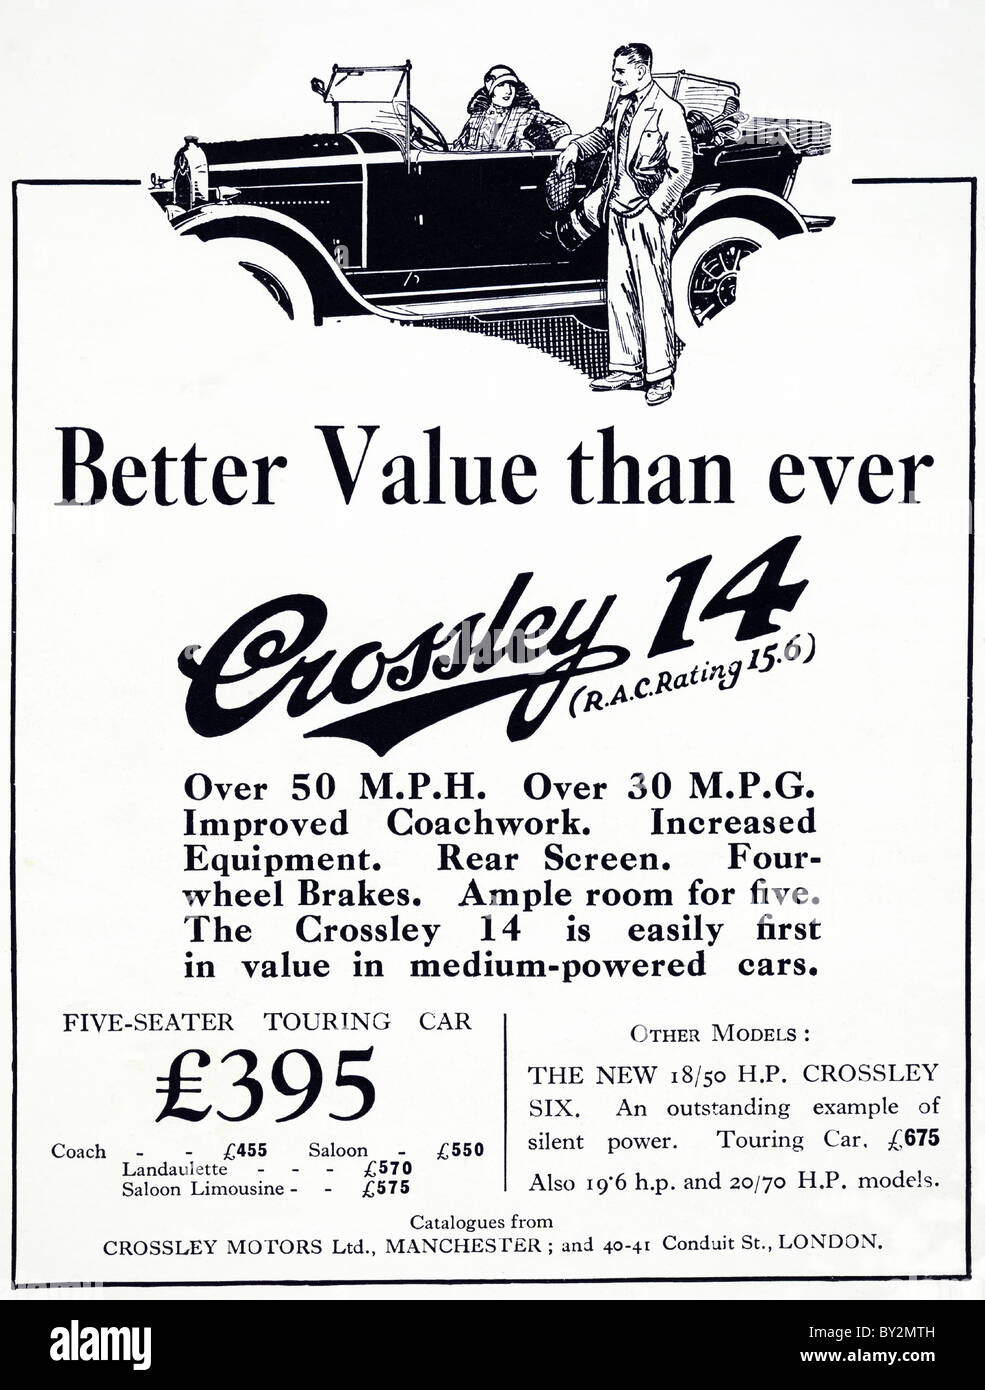 Original advert for Crossley Motors Ltd 14 car manufactued from 1922 to 1927 in Manchester England UK - Stock Image